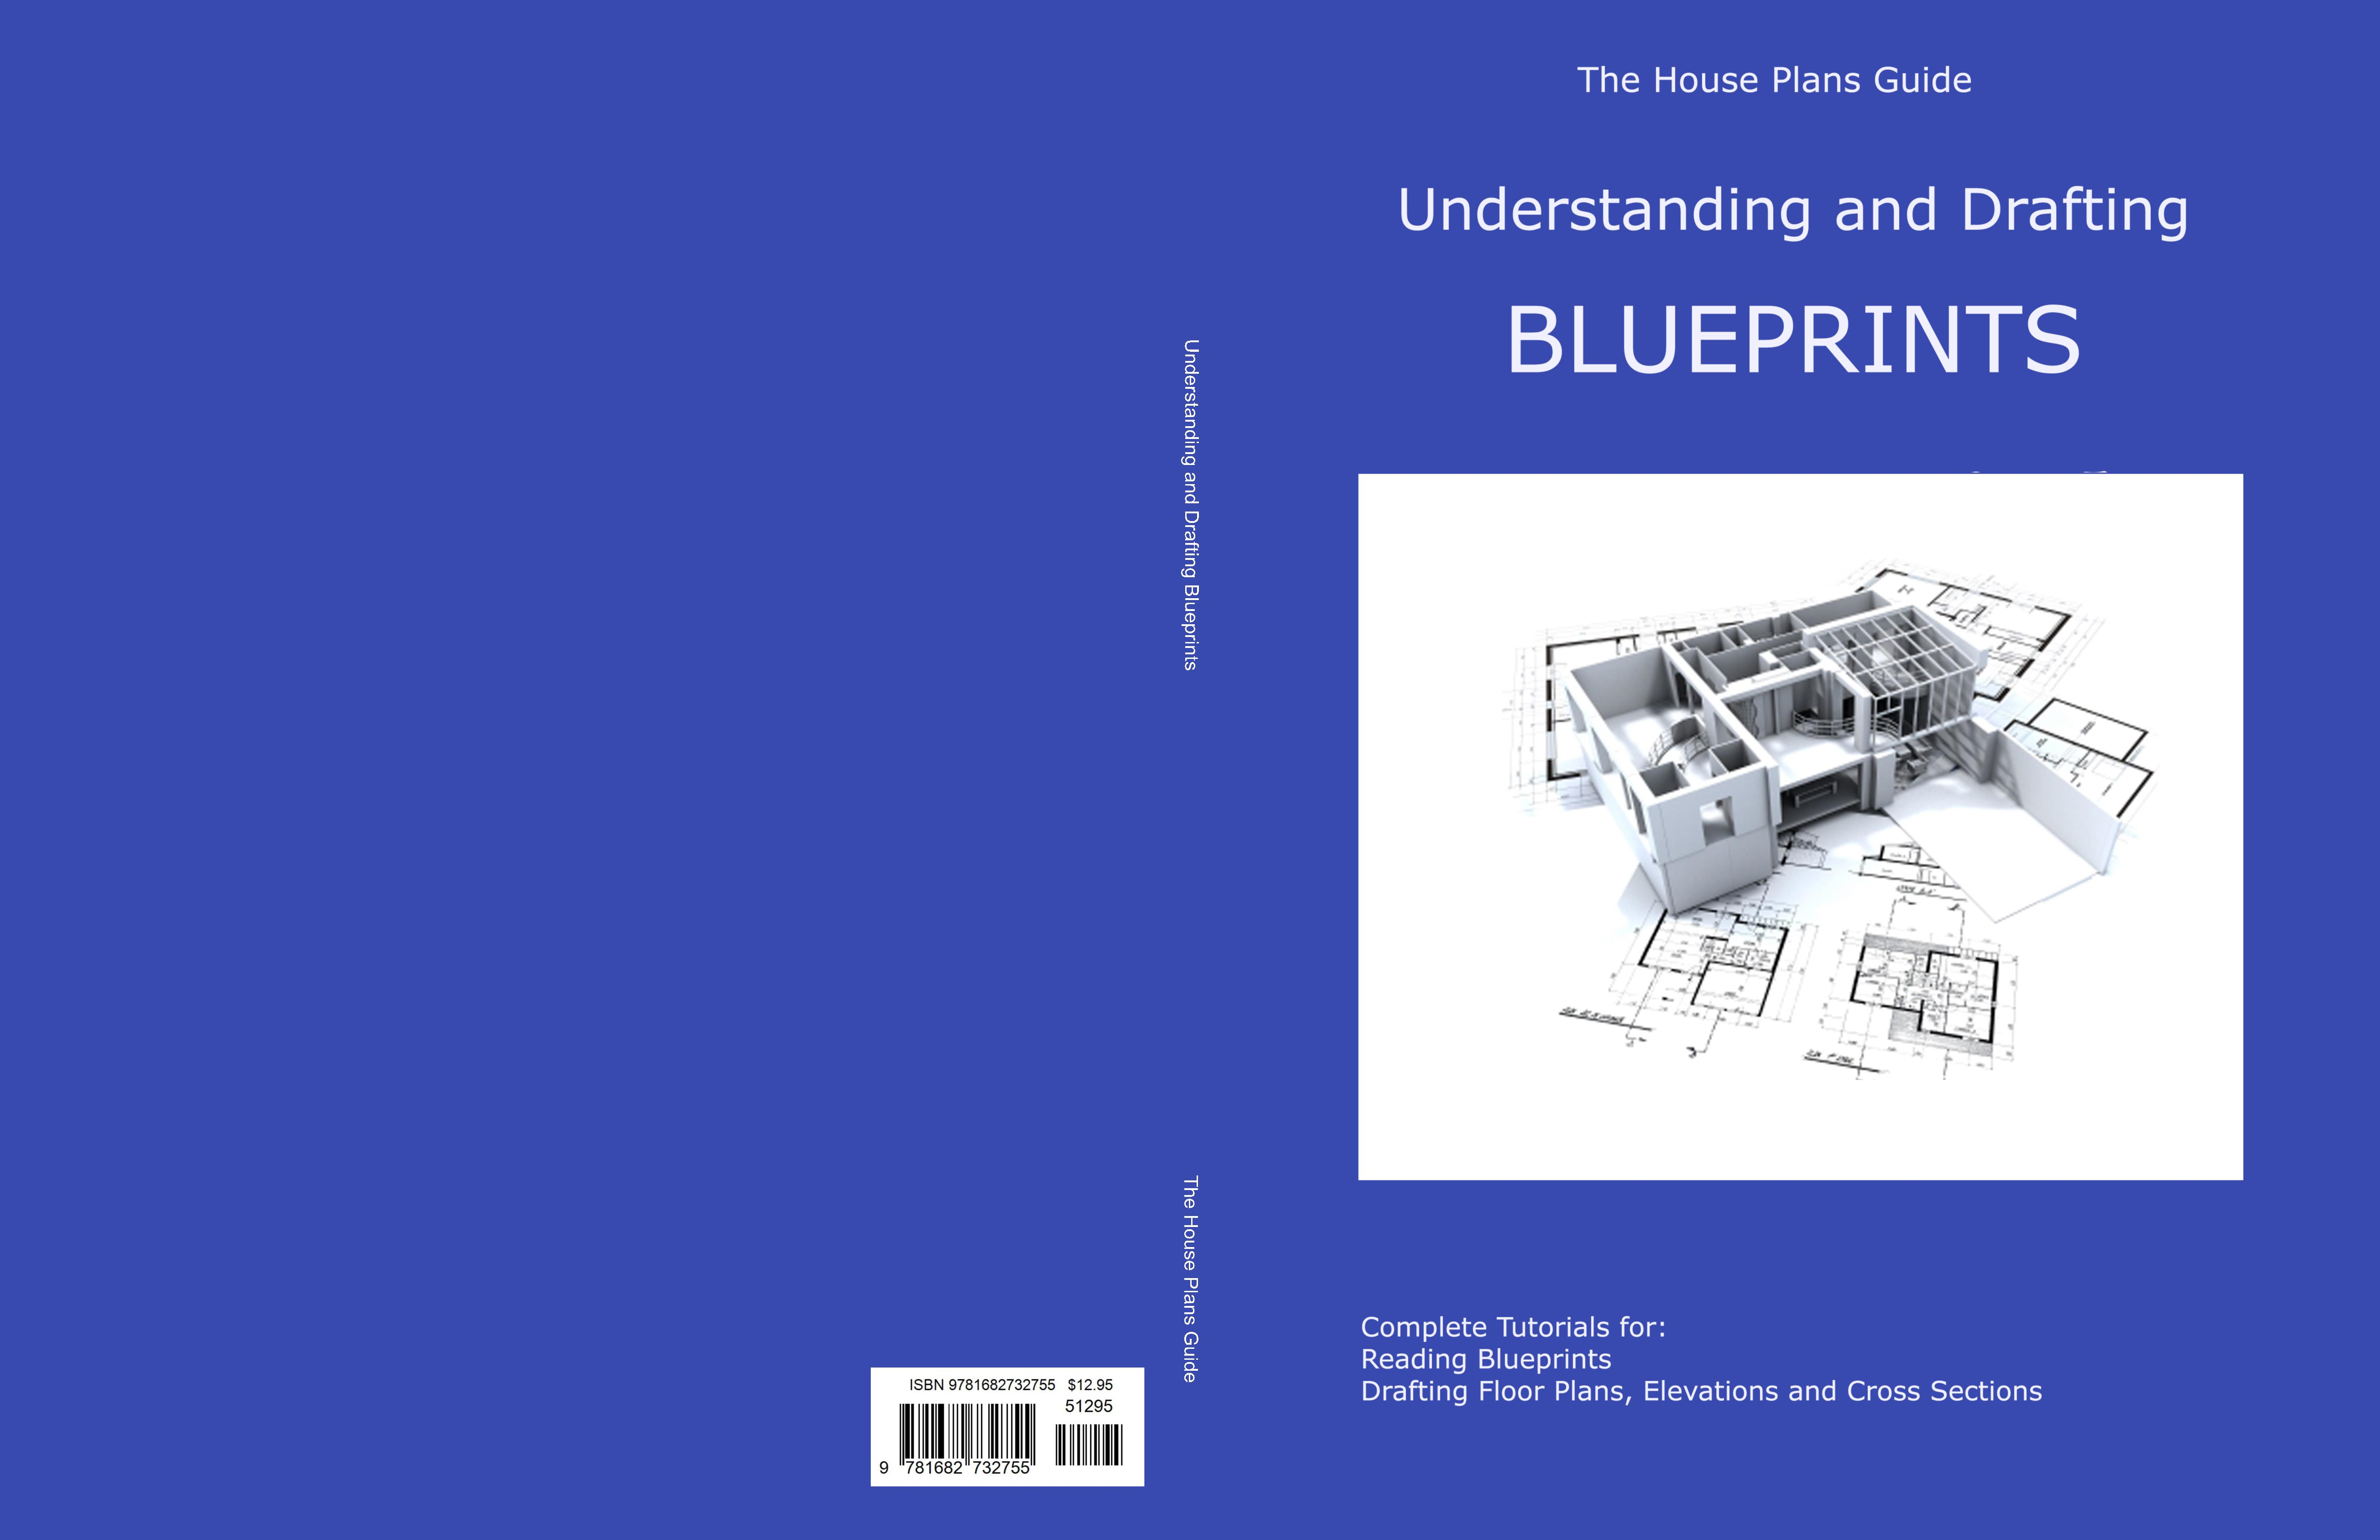 Understanding and Drafting Blueprints cover image